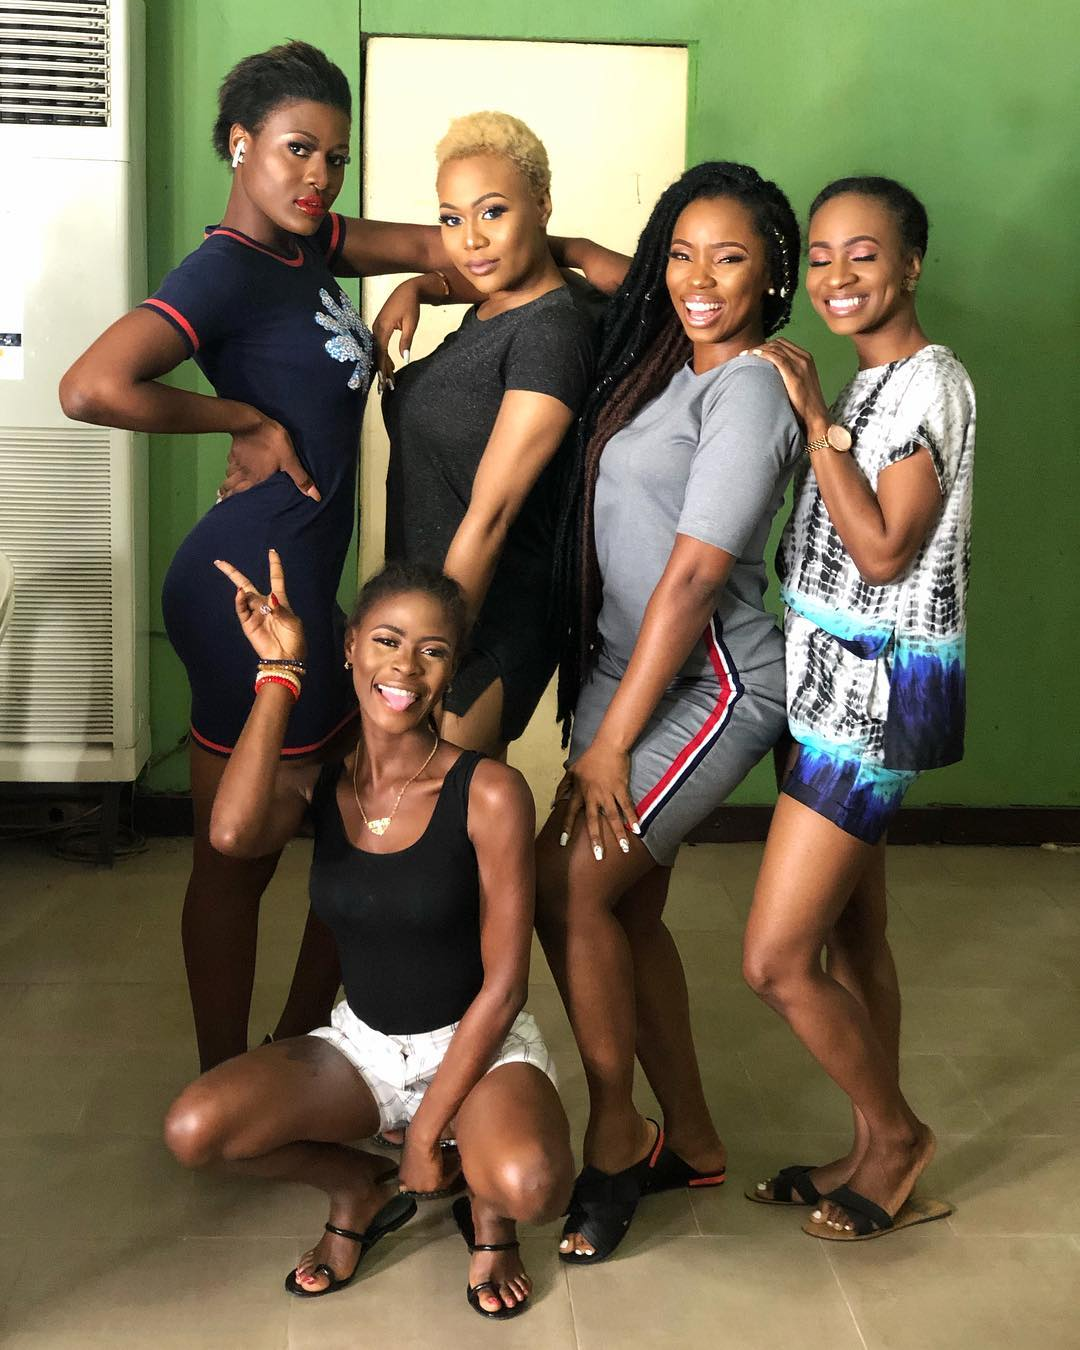 BamBam, Alex, Vandora, Anto And Khloe slay in new photo.